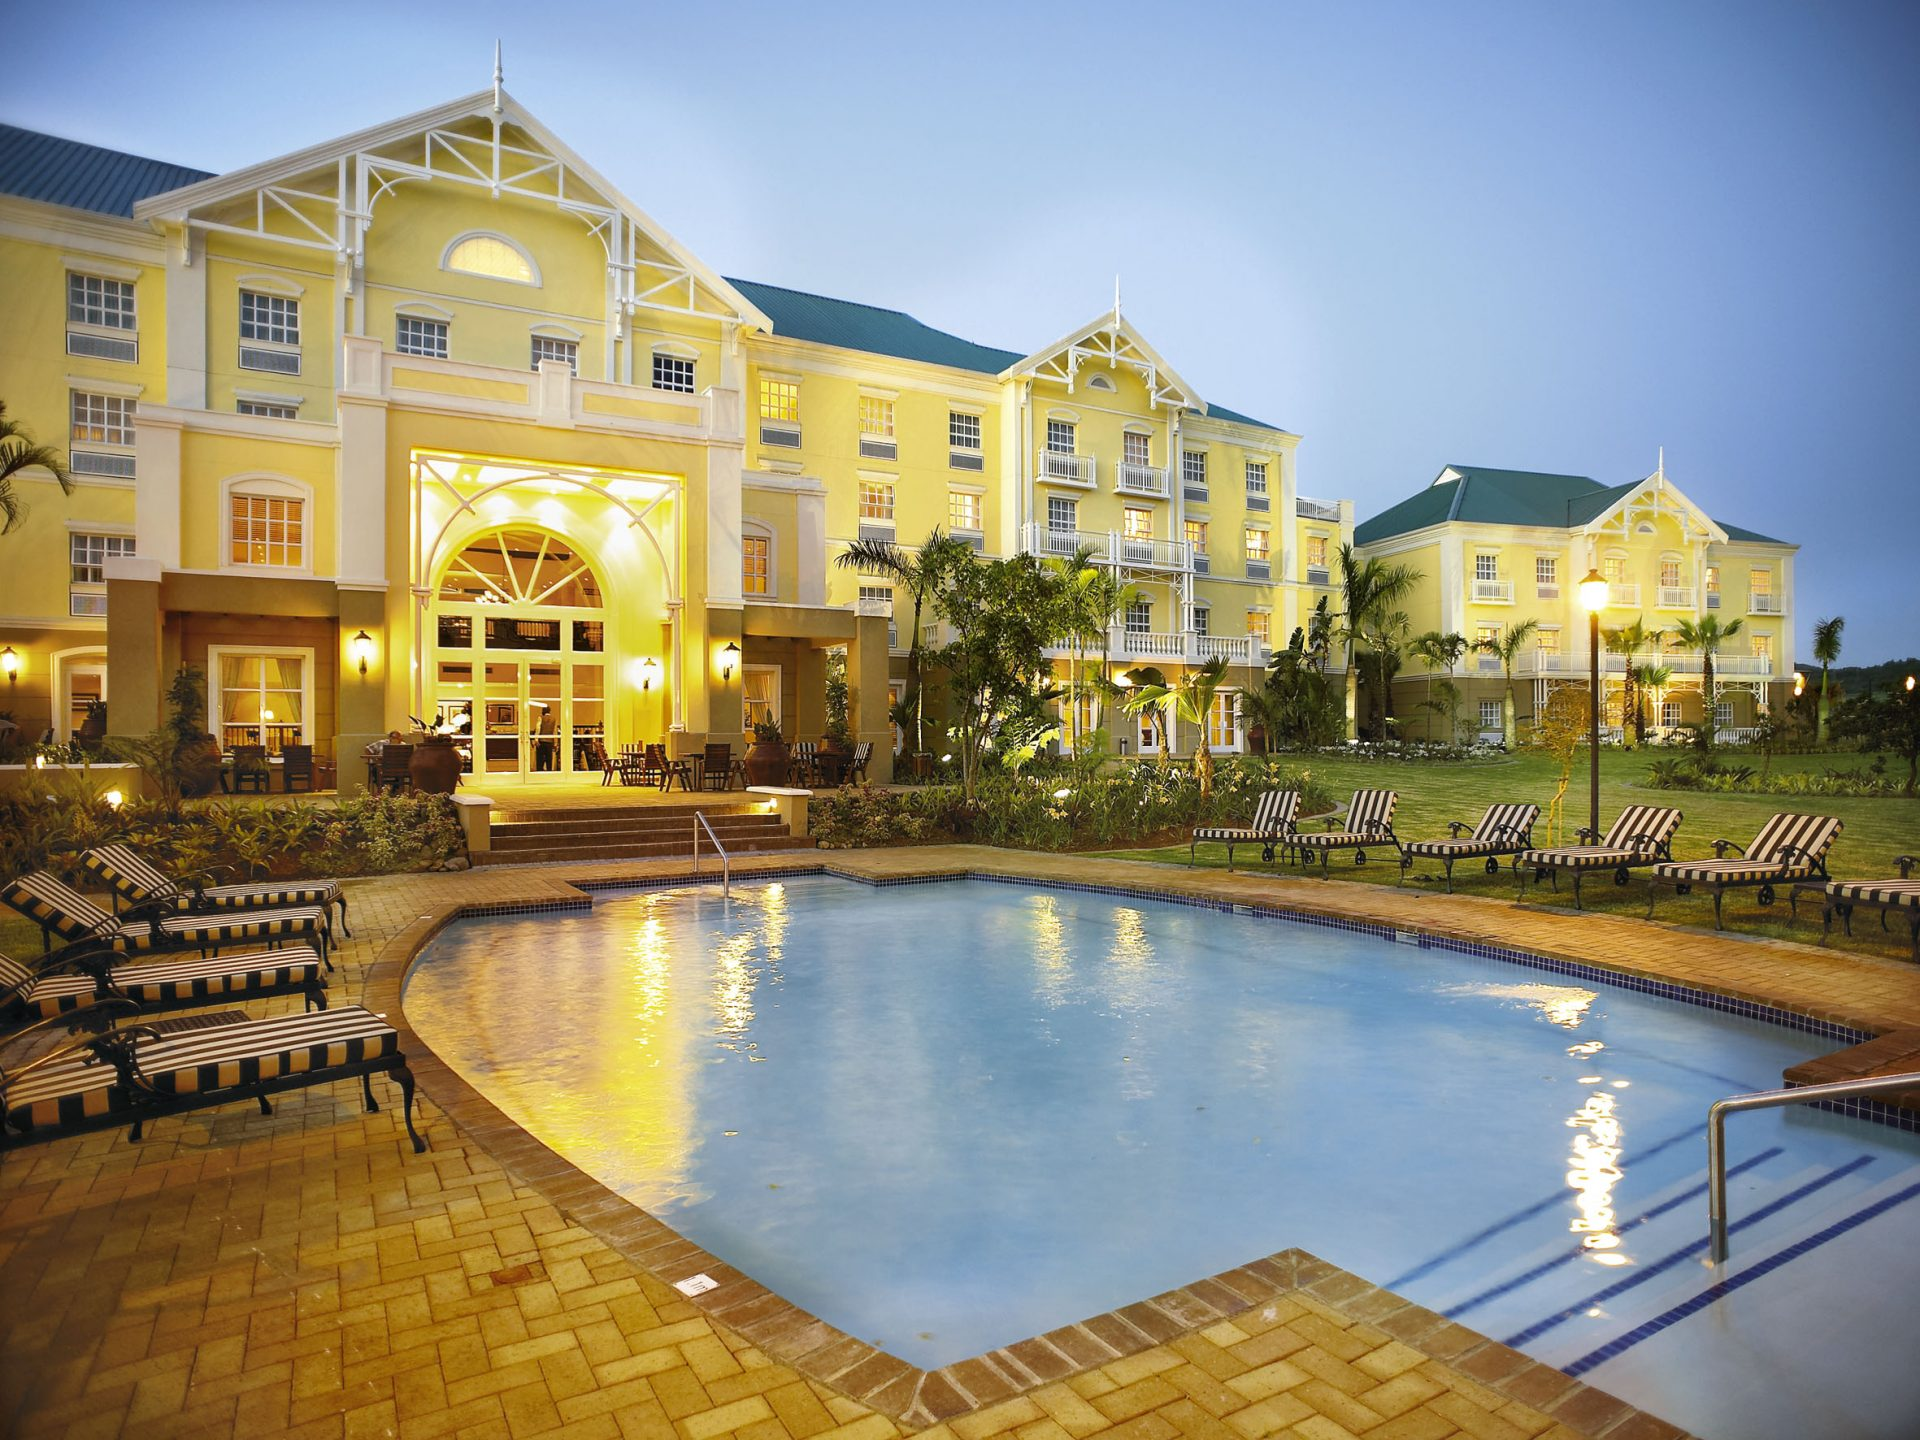 Exterior Of Hotel With Pool Area At Dusk